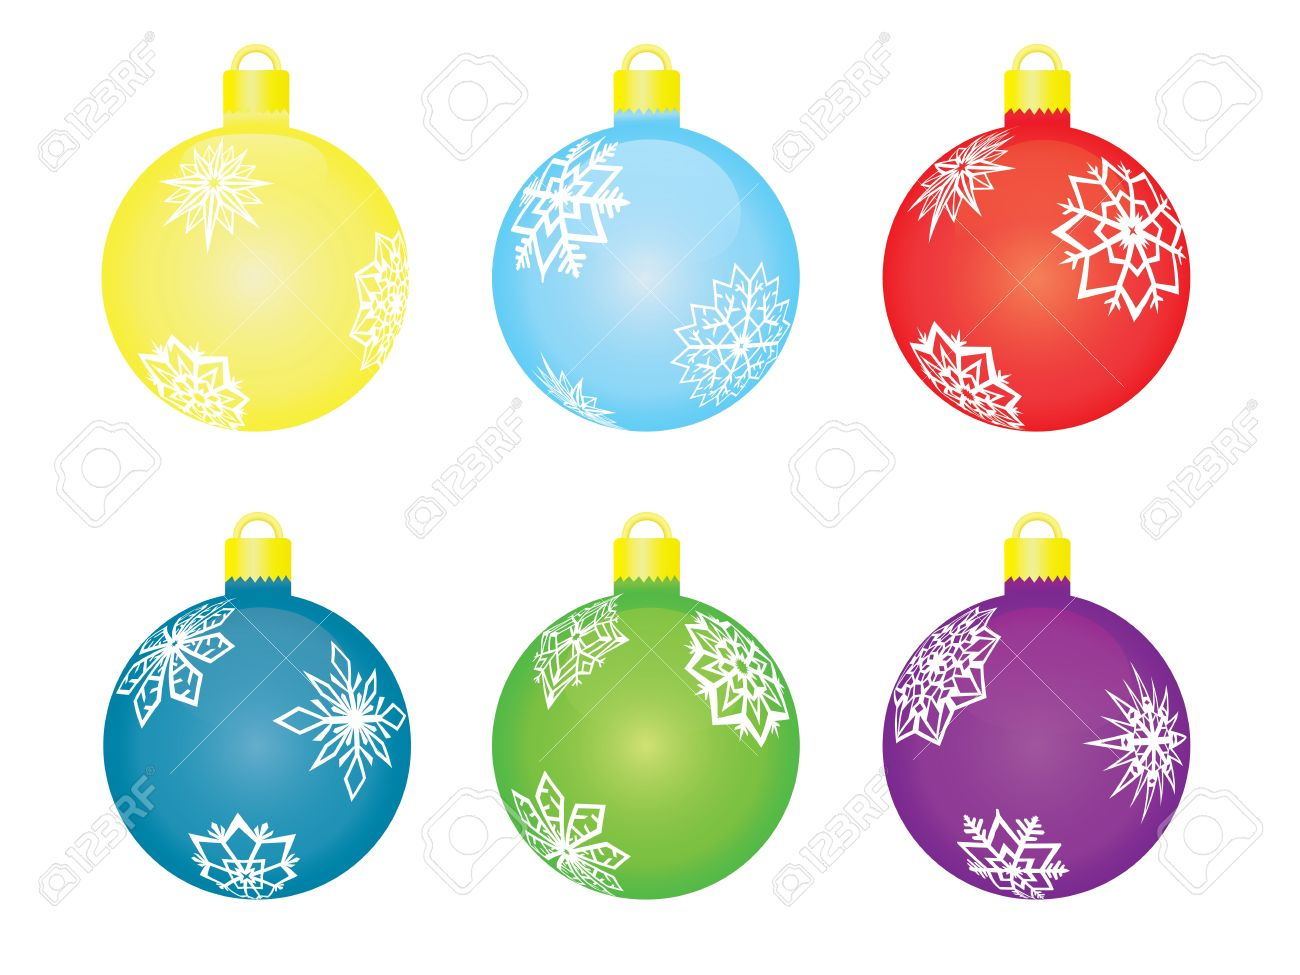 Christmas tree ball clipart #17